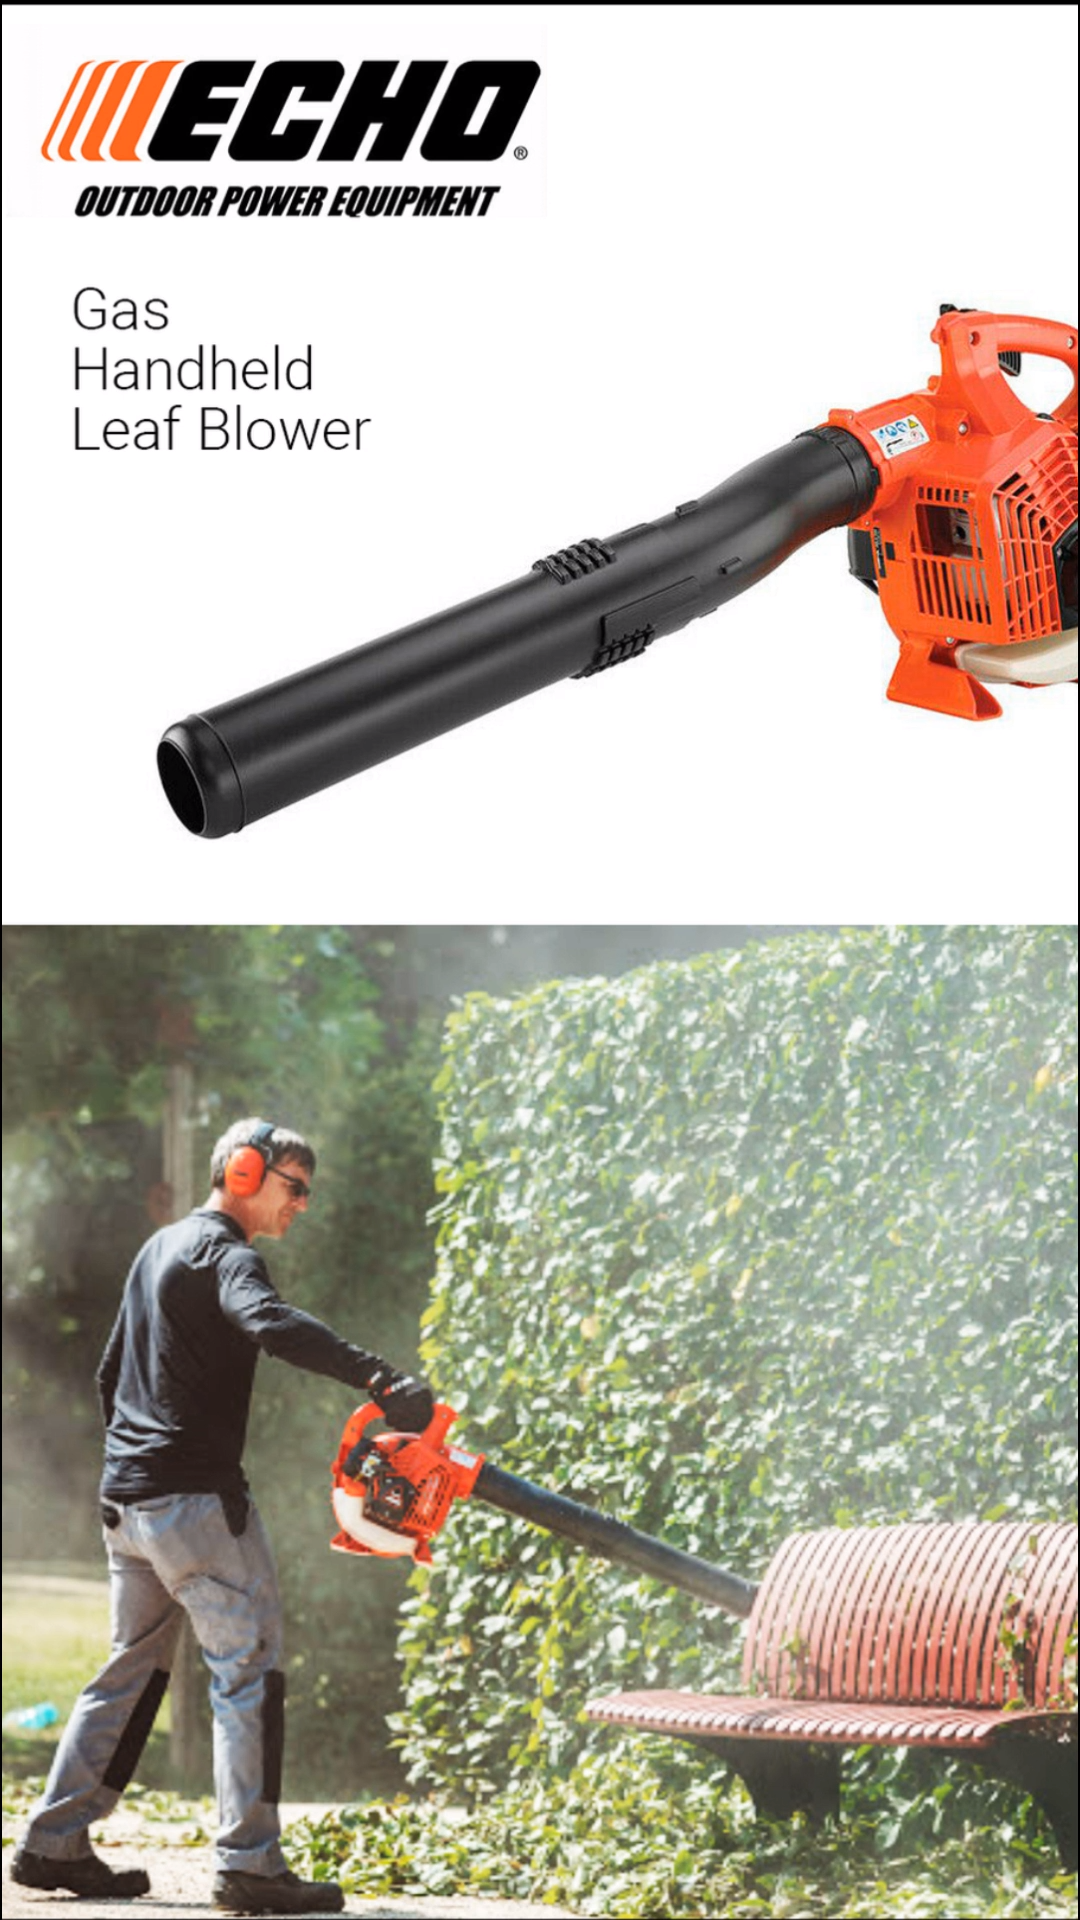 Echo Gas Blower Echo Handheld Blower Gardening To The Corner Posts Use The Angle Irons To Attach The Cross Beams On Which Th In 2020 Blowers Gas Blowers Rafter